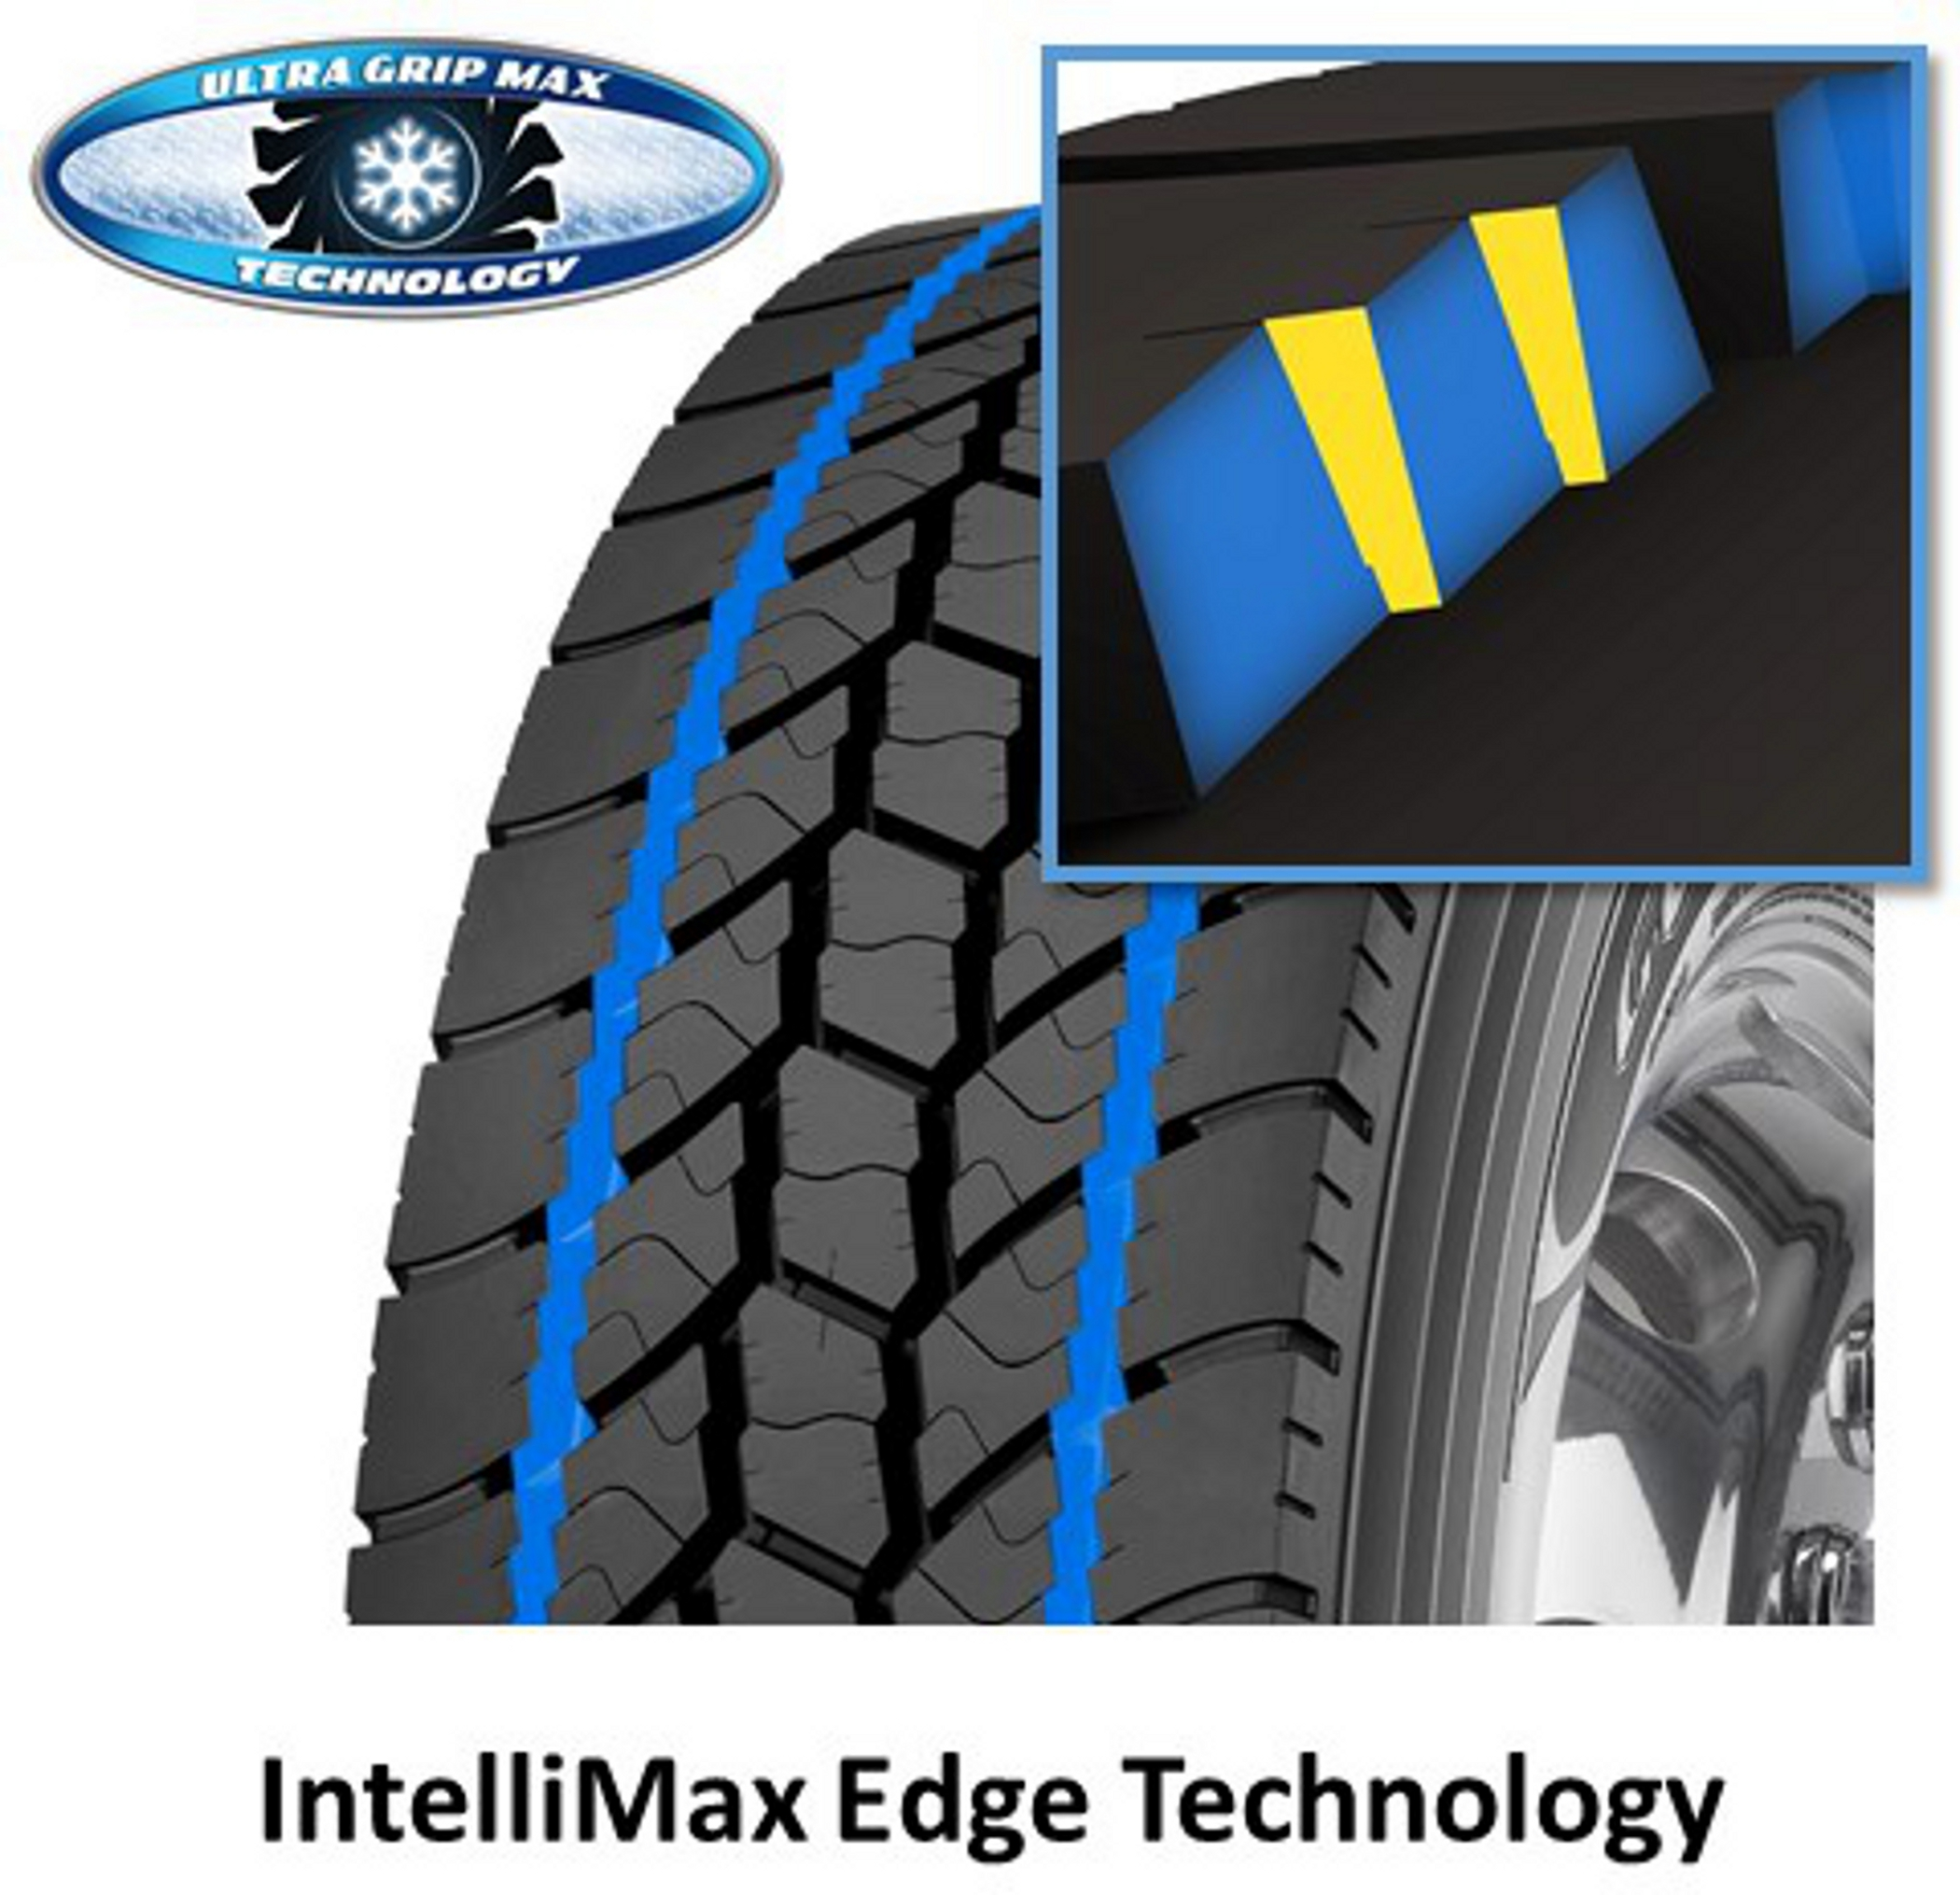 IntelliMax Edge Technology